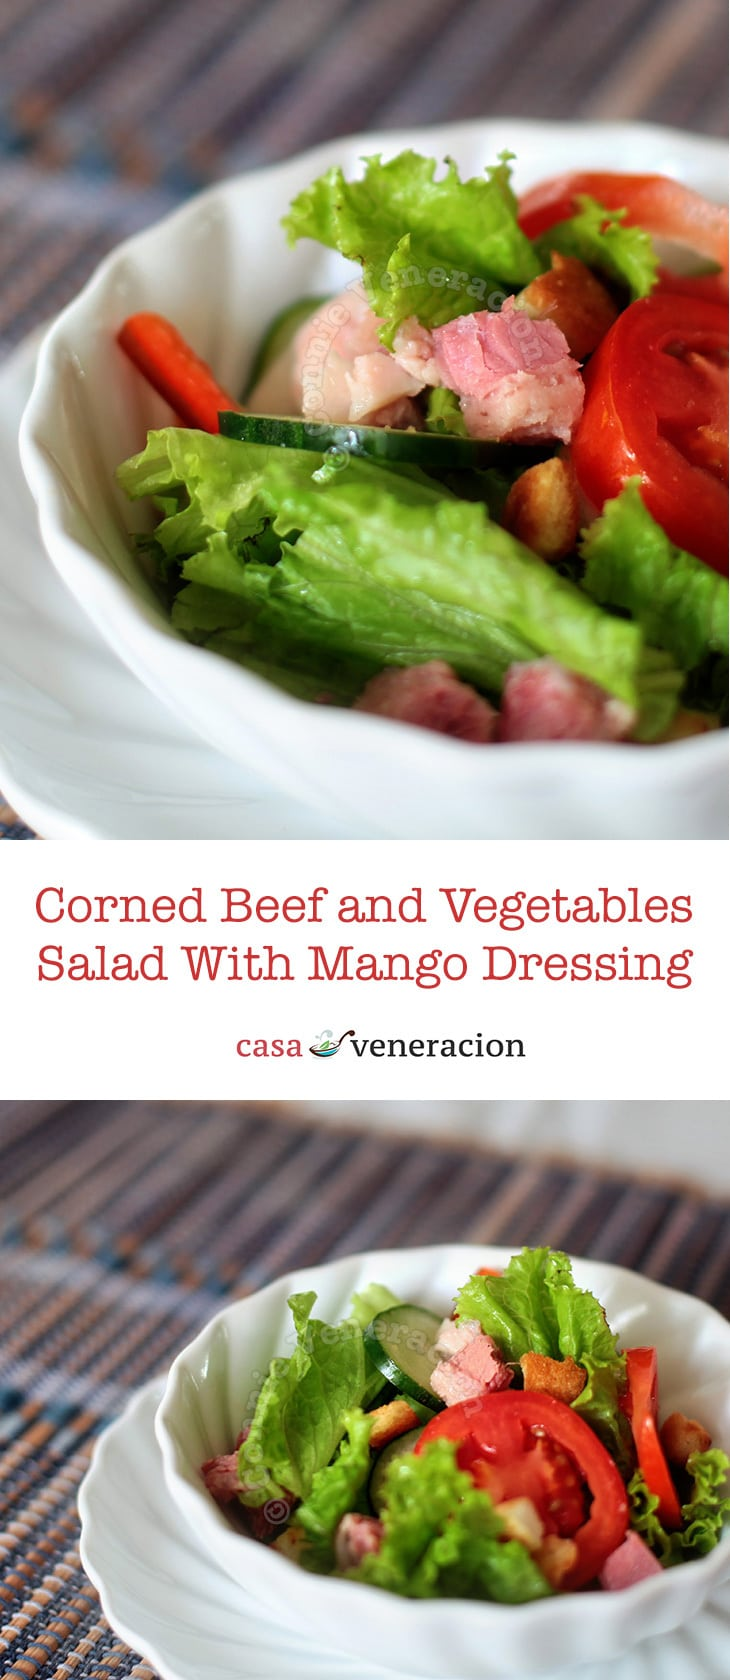 Cubes of homemade corned beef and salad vegetables are tossed with a dressing made with mango syrup, lime juice, mustard and ginger.